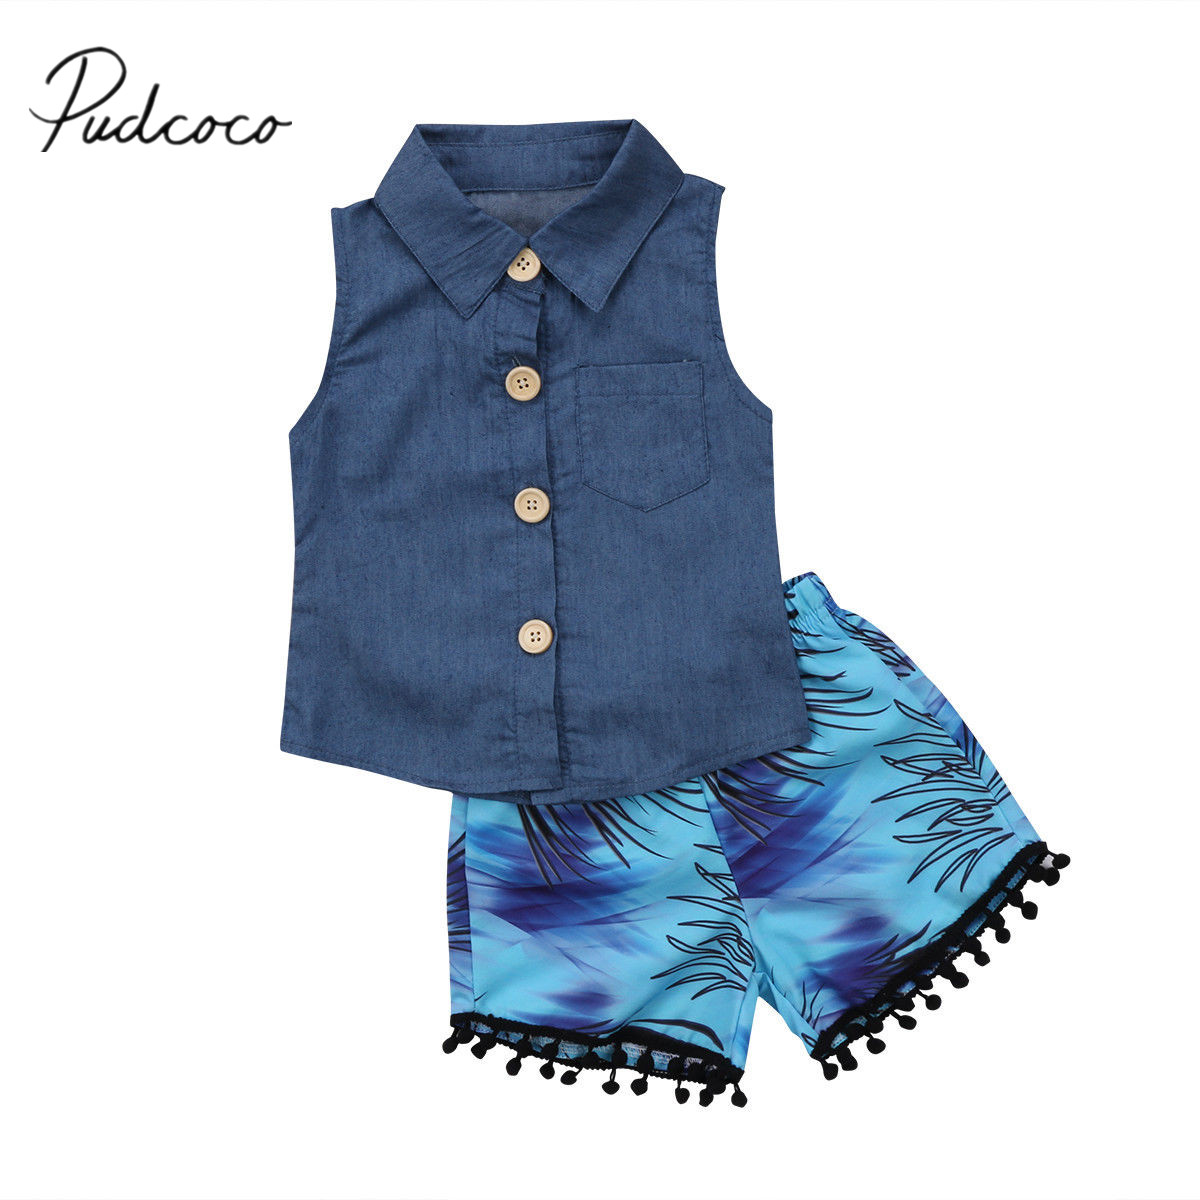 2018 Brand New Fashion Toddler Infant Child Kids Baby Girls Sleeveless Denim Tops Tassel Shorts 2pcs Outfits Summer Set 1-6T 1 7y toddler kids clothes 2017 fashion children girls leopard hooded vest t shirt tops hole jean denim shorts 2pcs clothing set